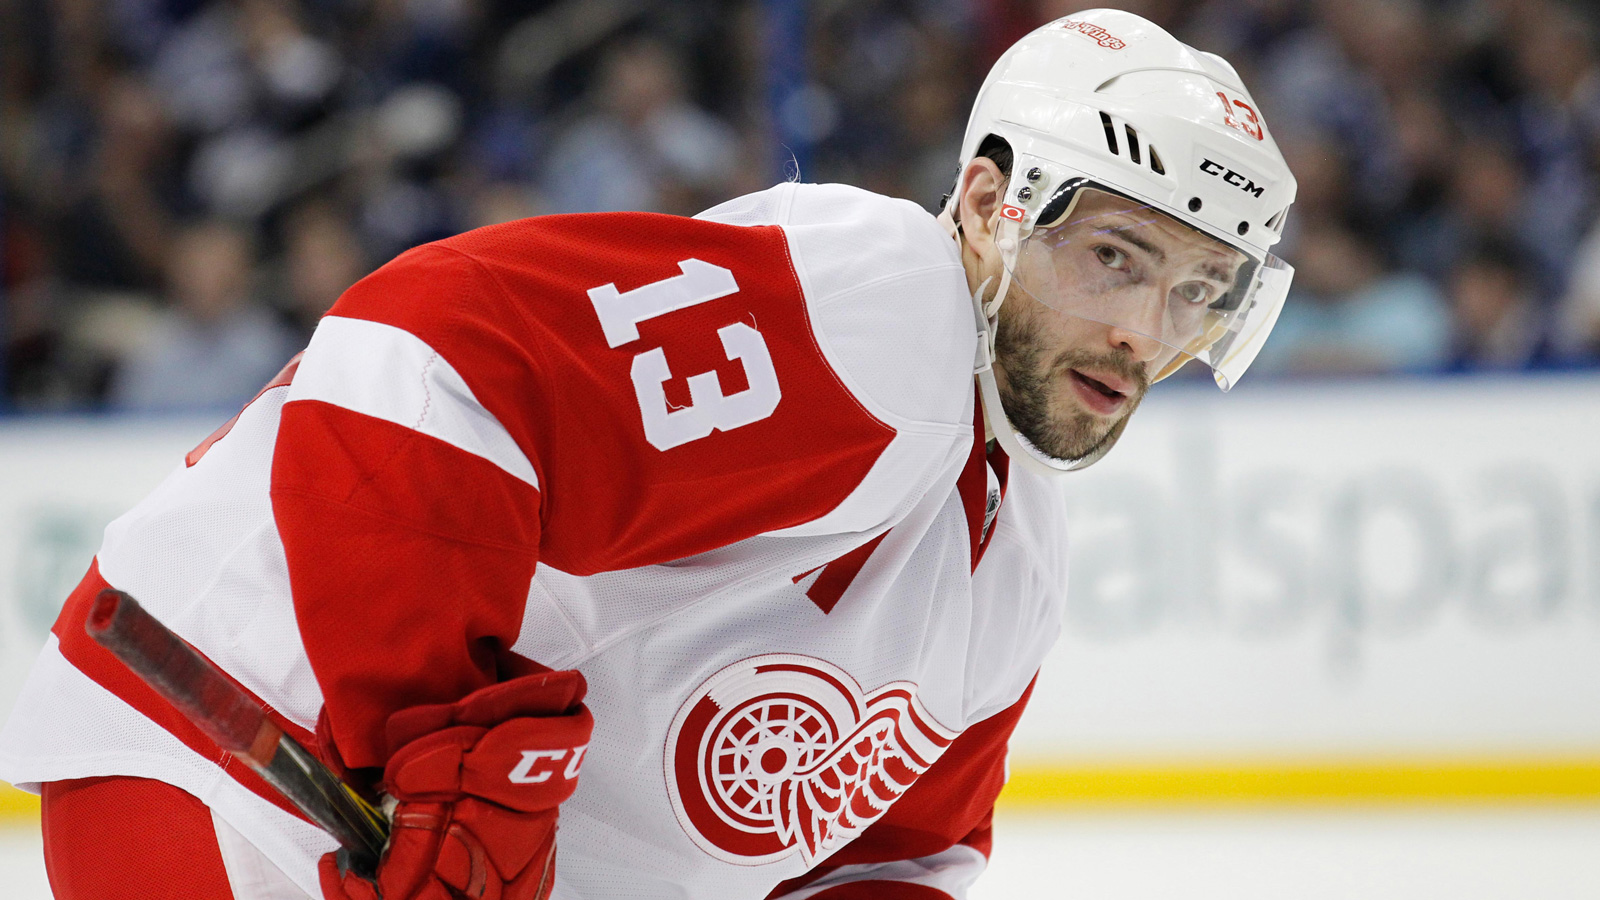 Sharks spoil Datsyuk's return for Red Wings